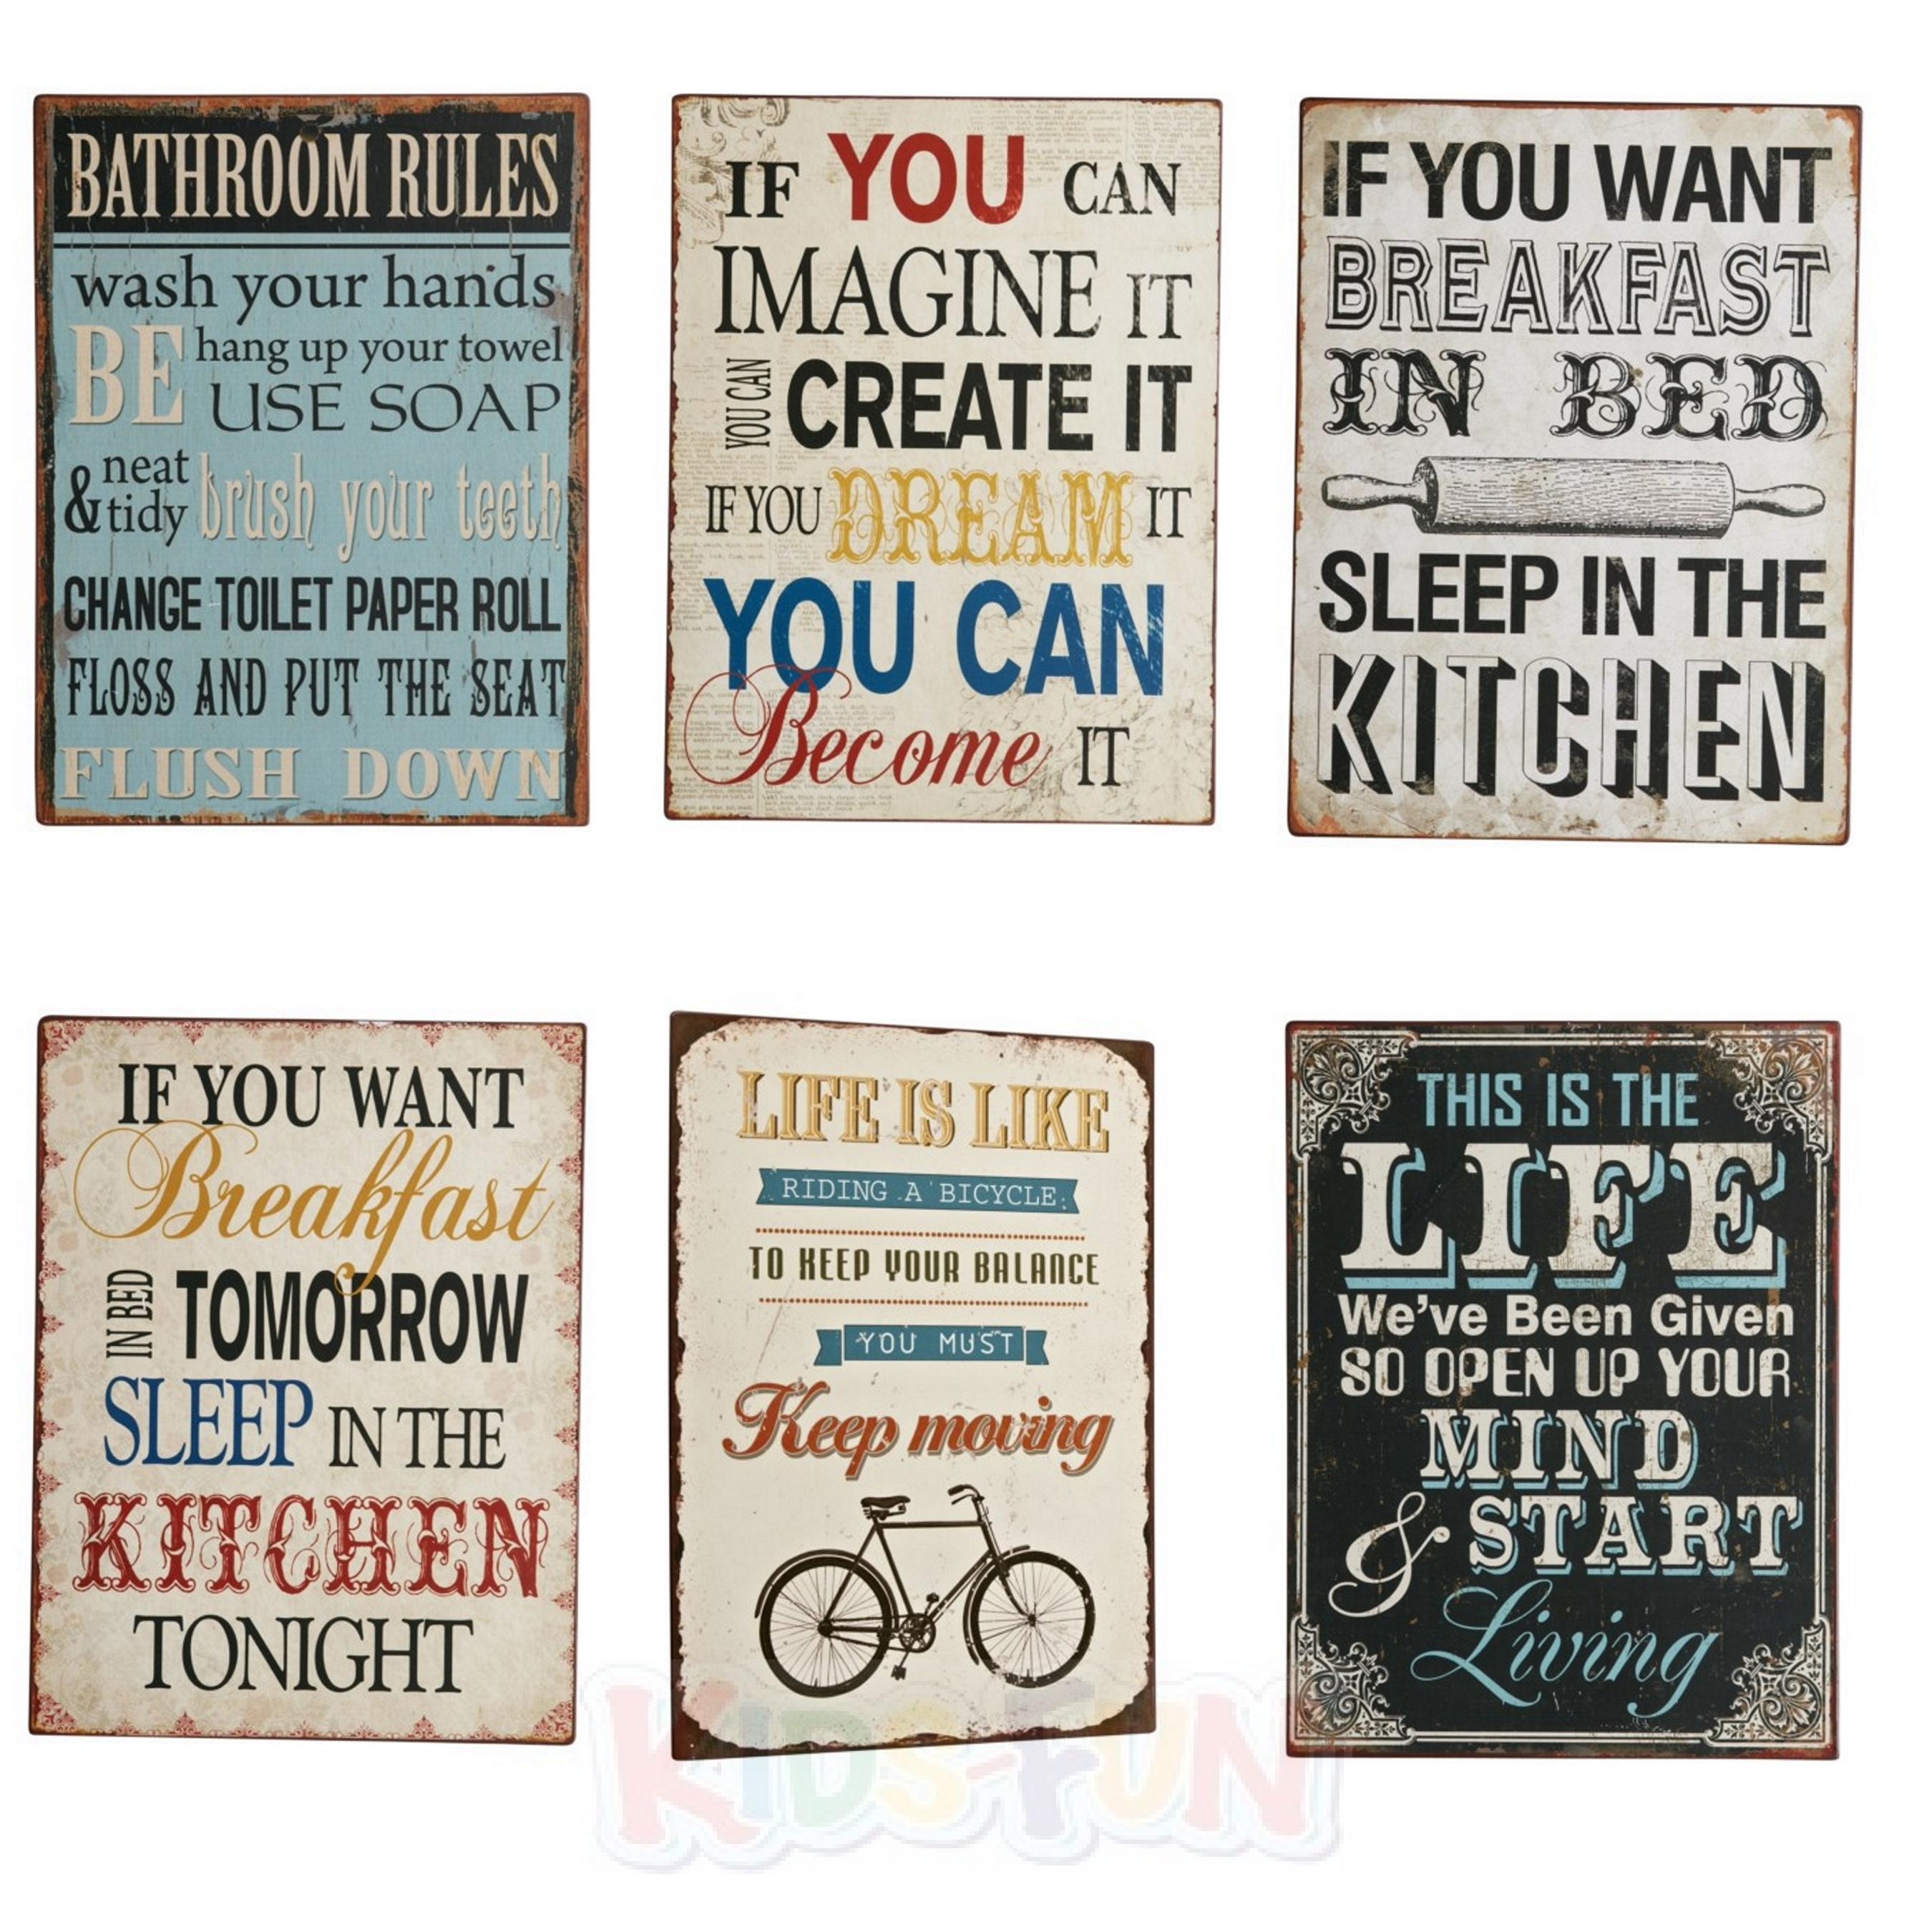 blechschild 27x35cm spr che deko spruch vintage retro metall schild wandbehang ebay. Black Bedroom Furniture Sets. Home Design Ideas